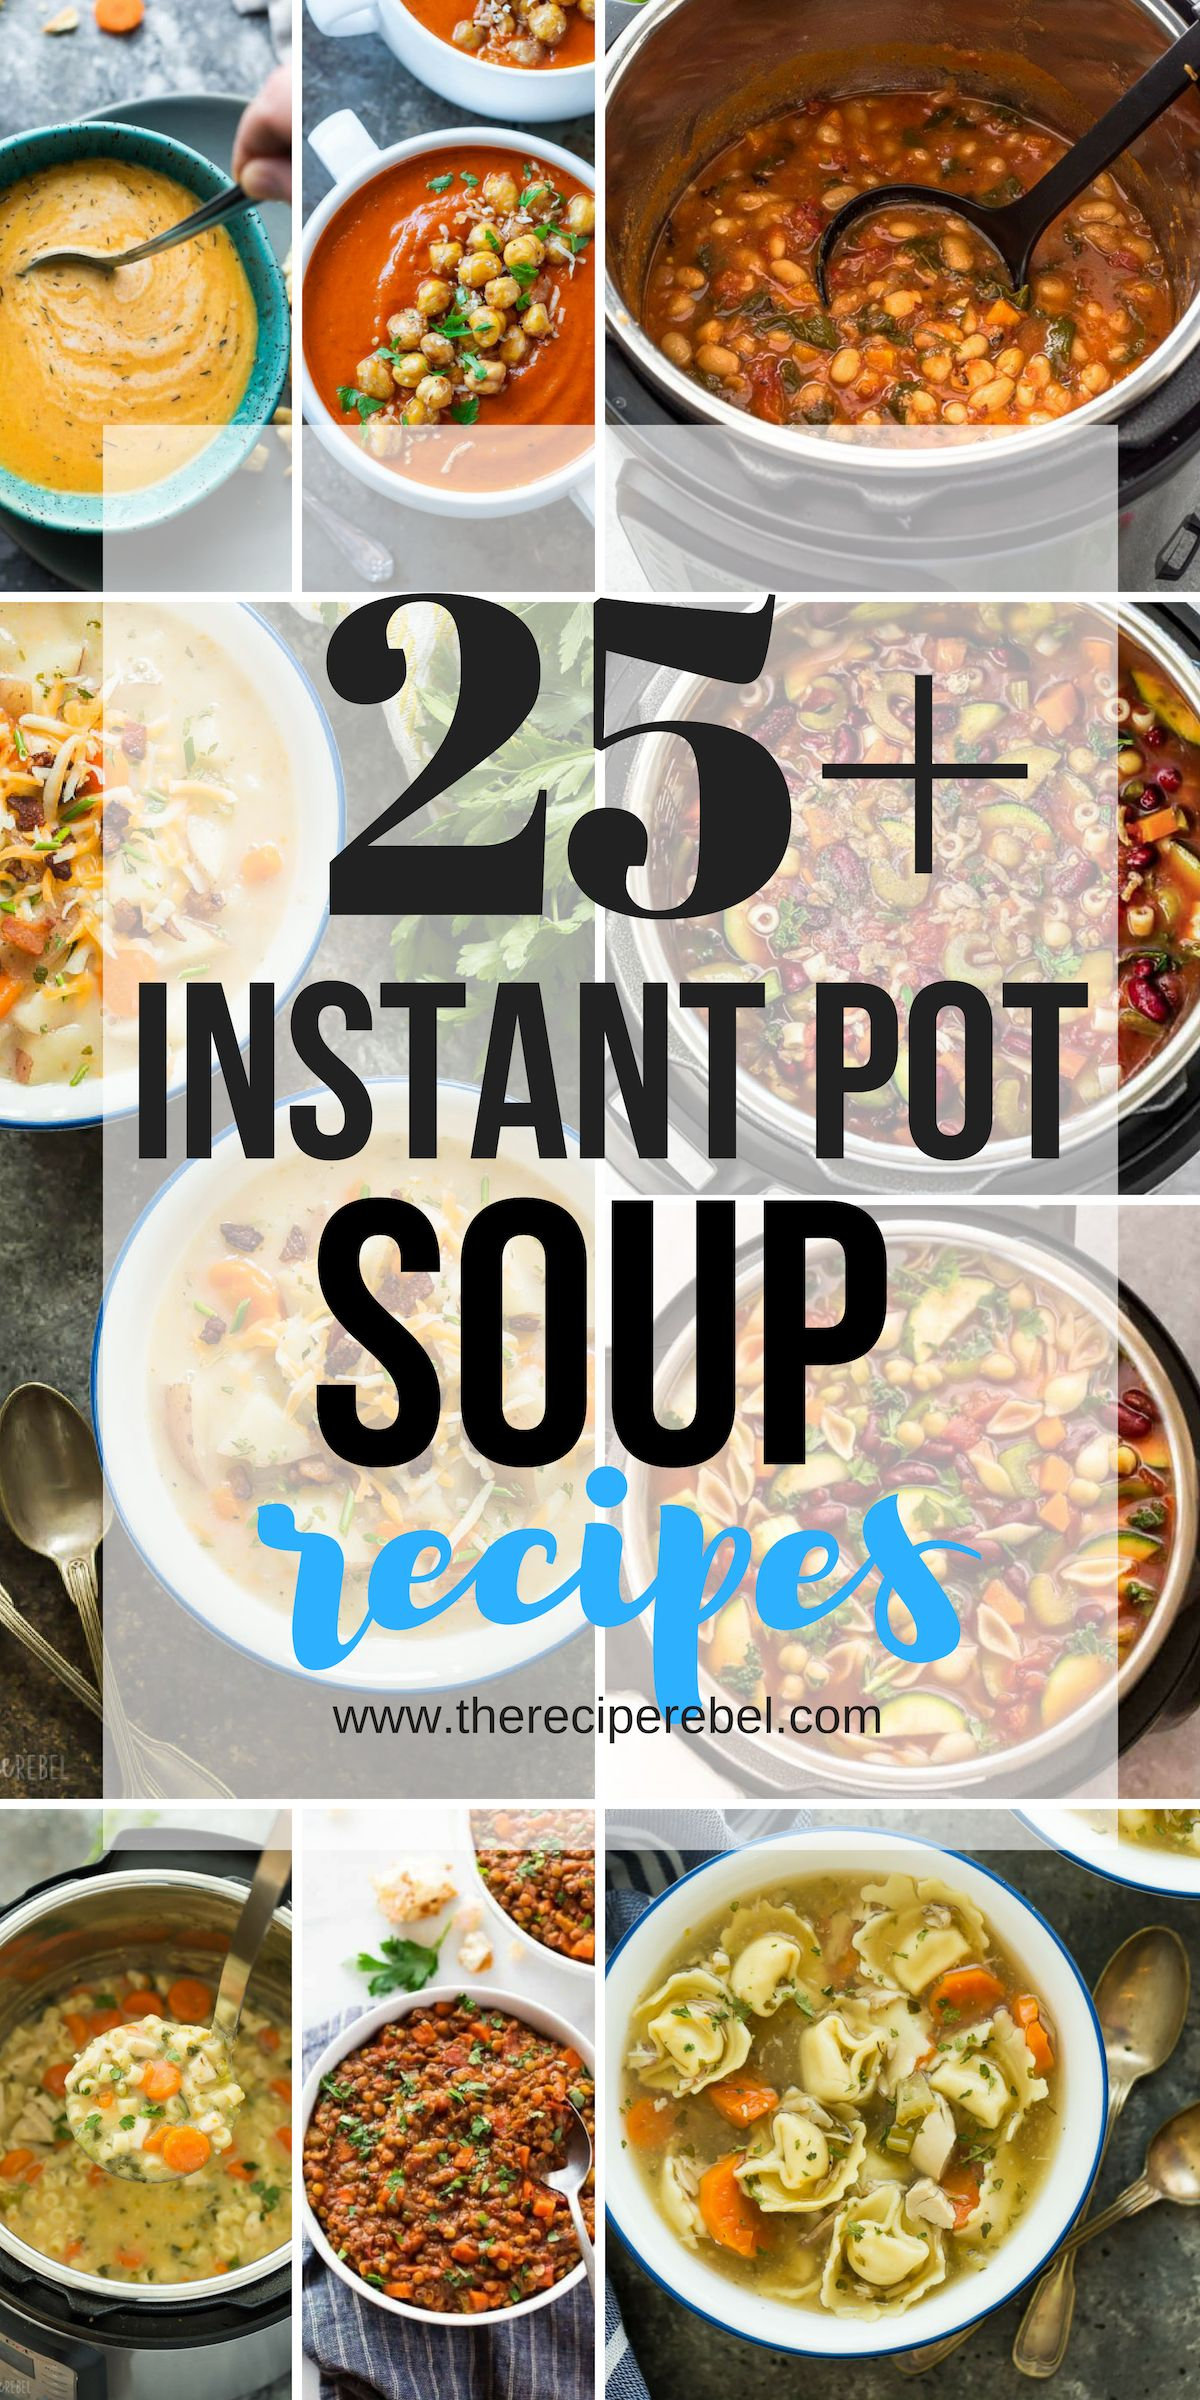 Loads Of Instant Pot Soup Recipes To Keep You Warm This Fall And Winter Chicken Soup Pot Instant Pot Soup Recipes Instant Pot Dinner Recipes Instant Pot Soup